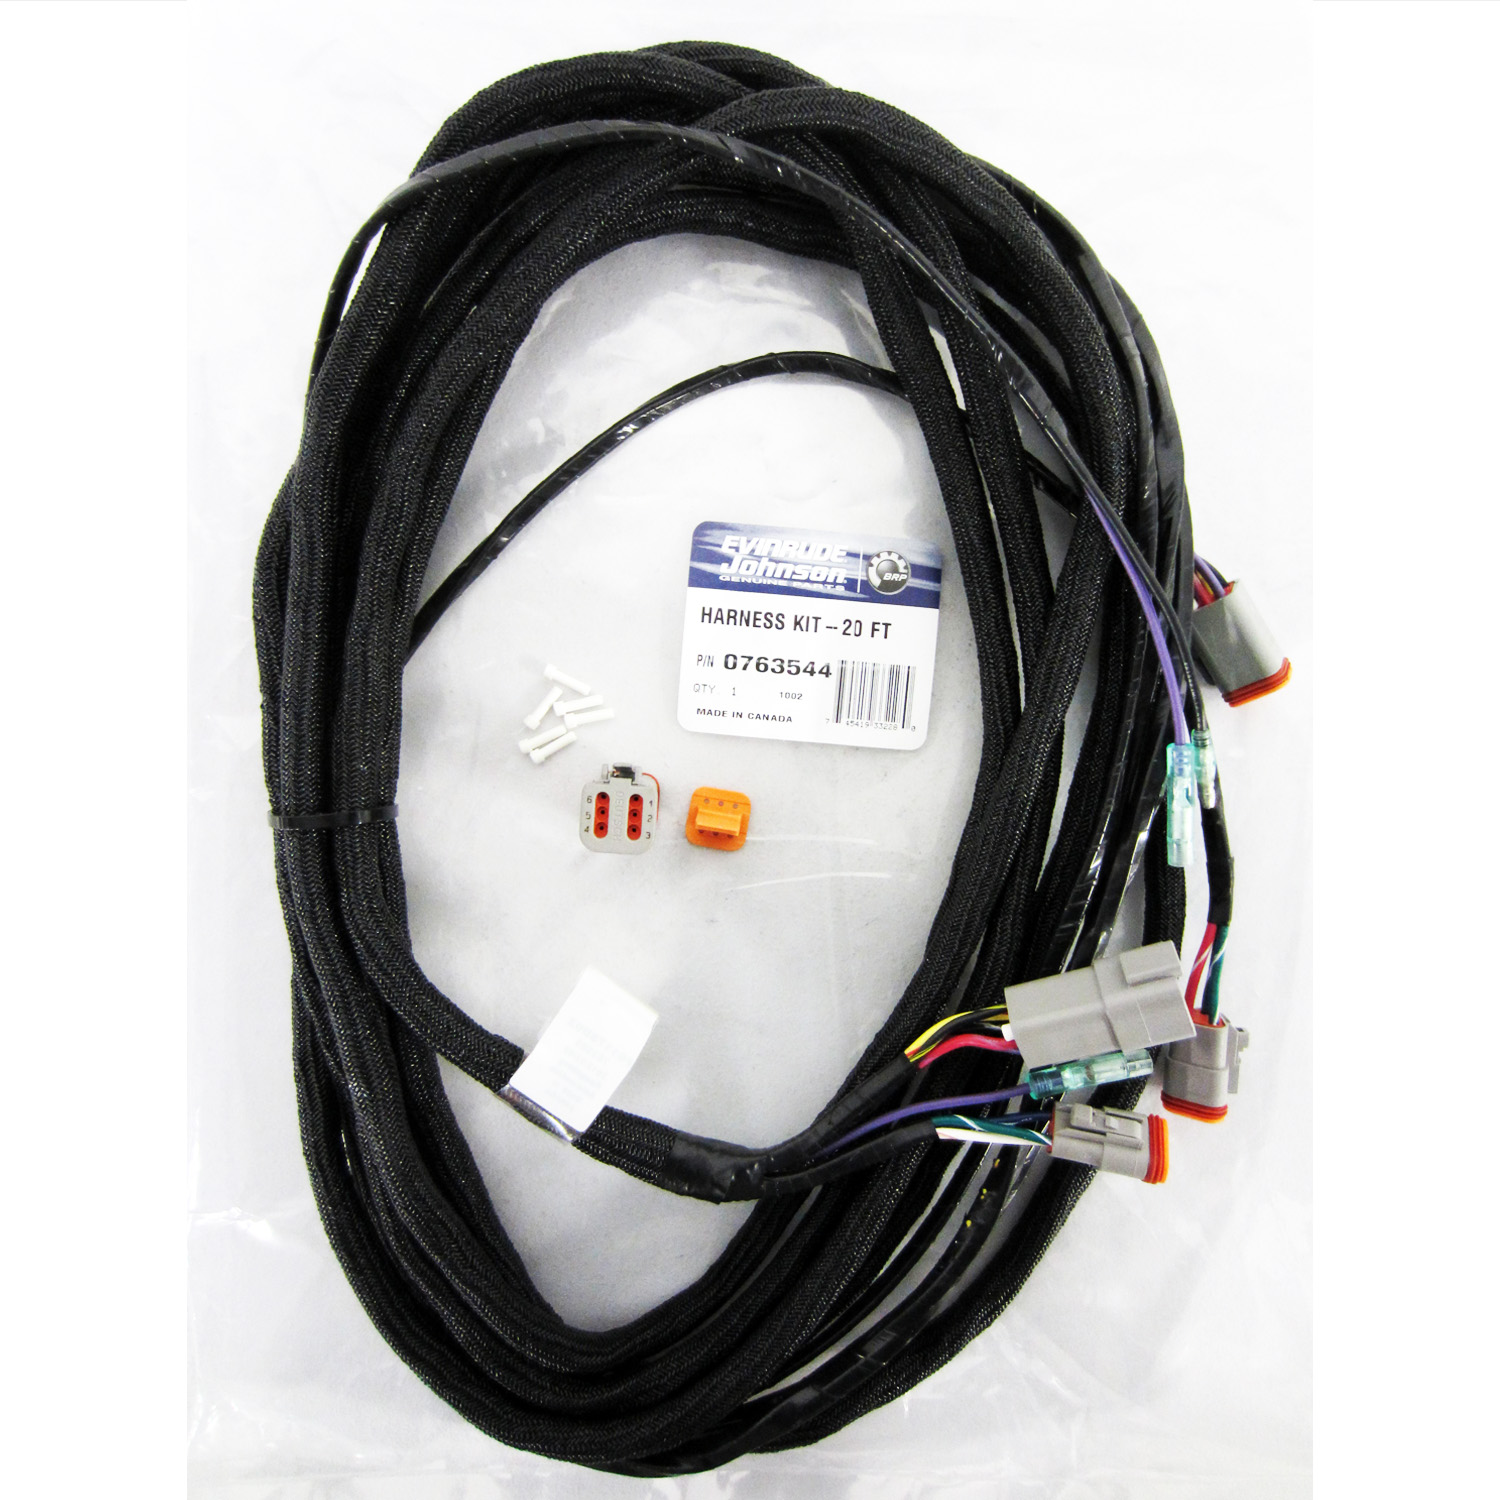 Evinrude Johnson 0763544 Harness Kit 20 Ft Ebay Wire 20ft Main Electrical Ignition Cable 763544